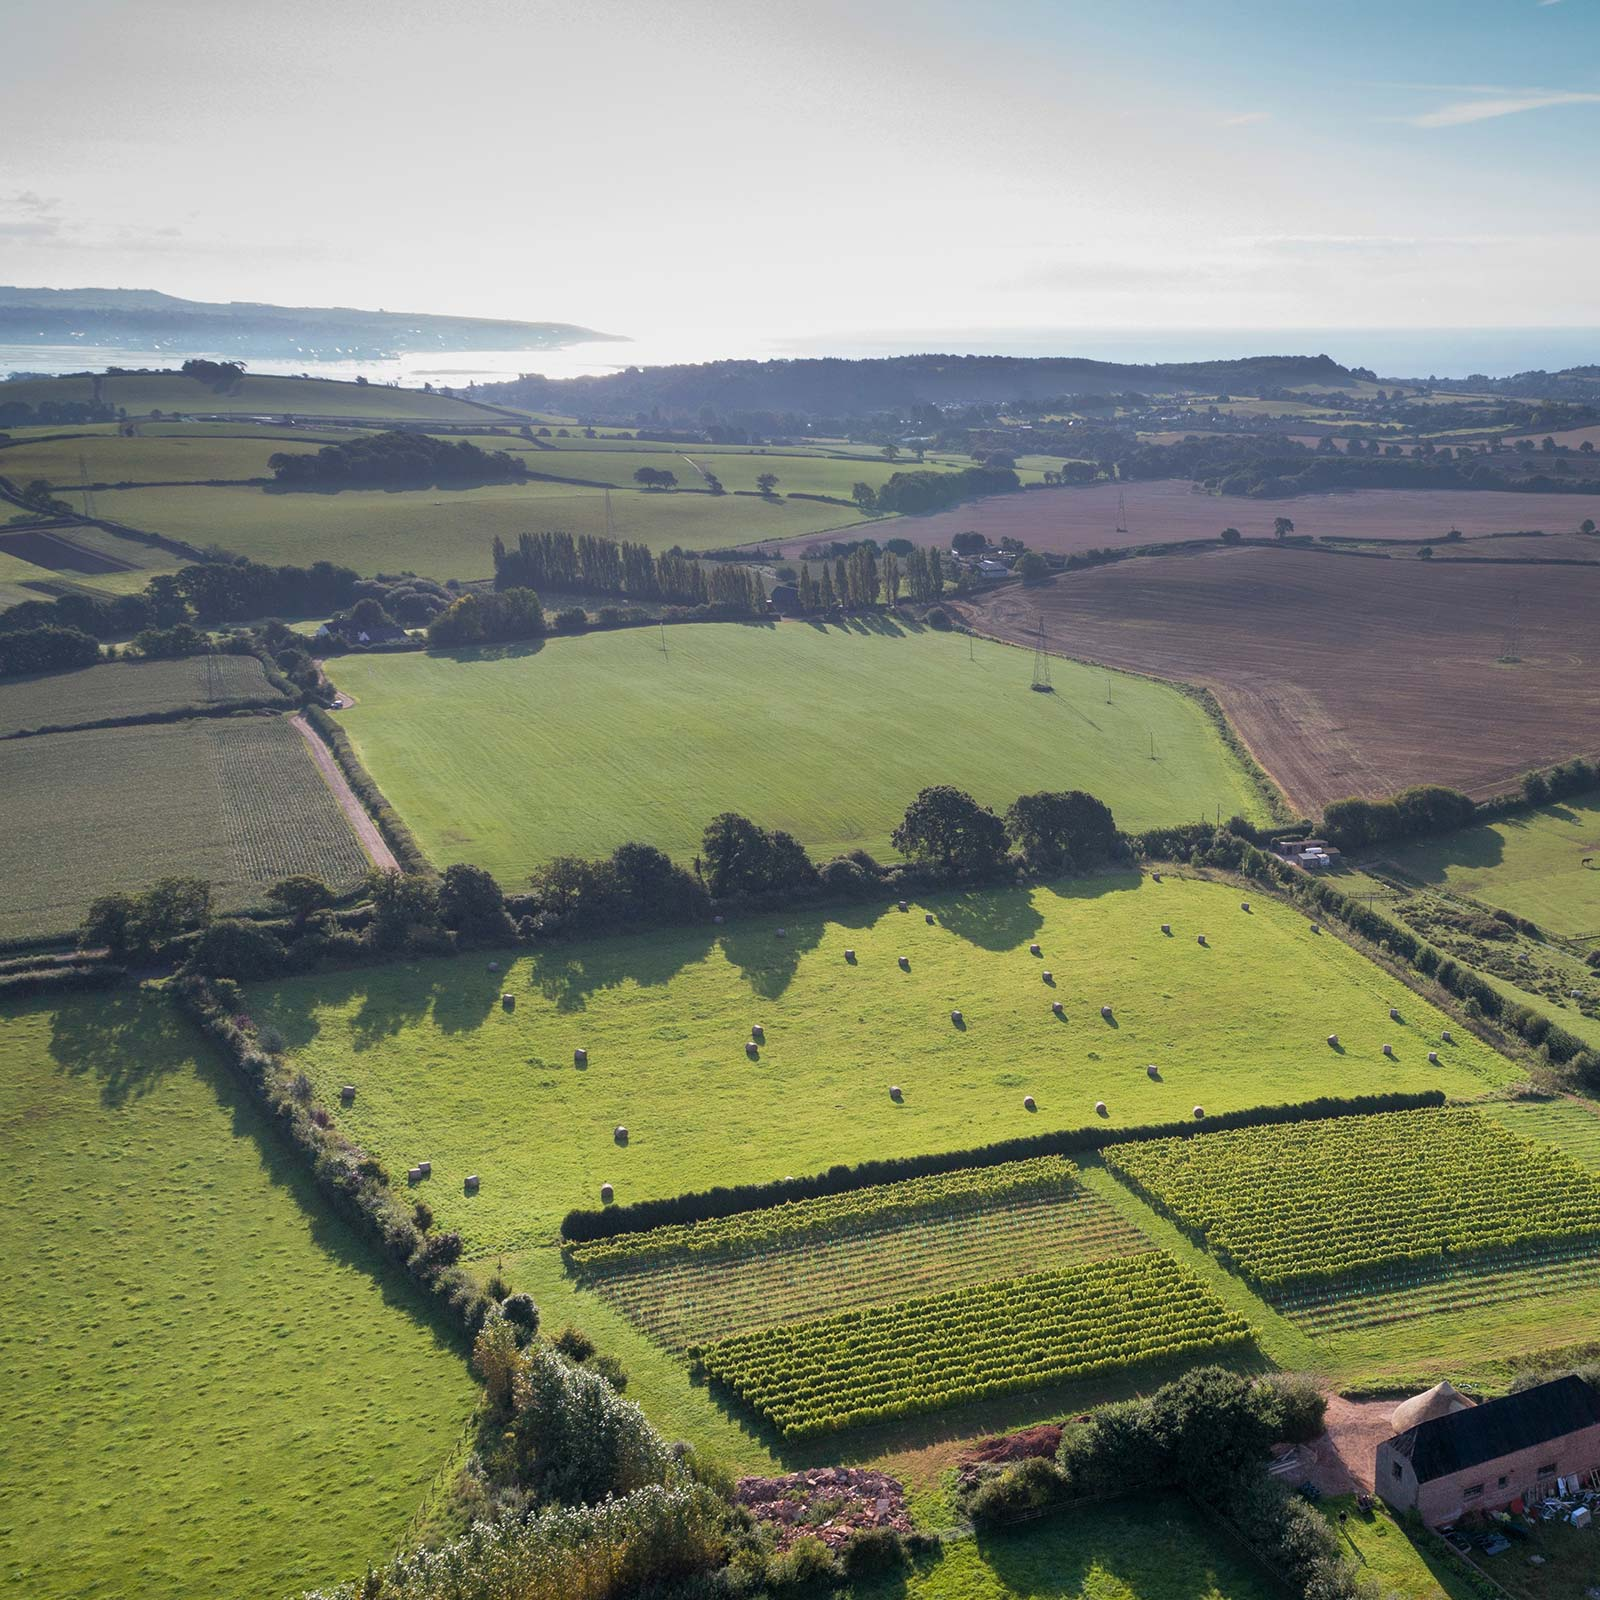 Brickhouse Vineyard in Devon surrounded by beautiful countryside, with view stretching to the South Devon coast.